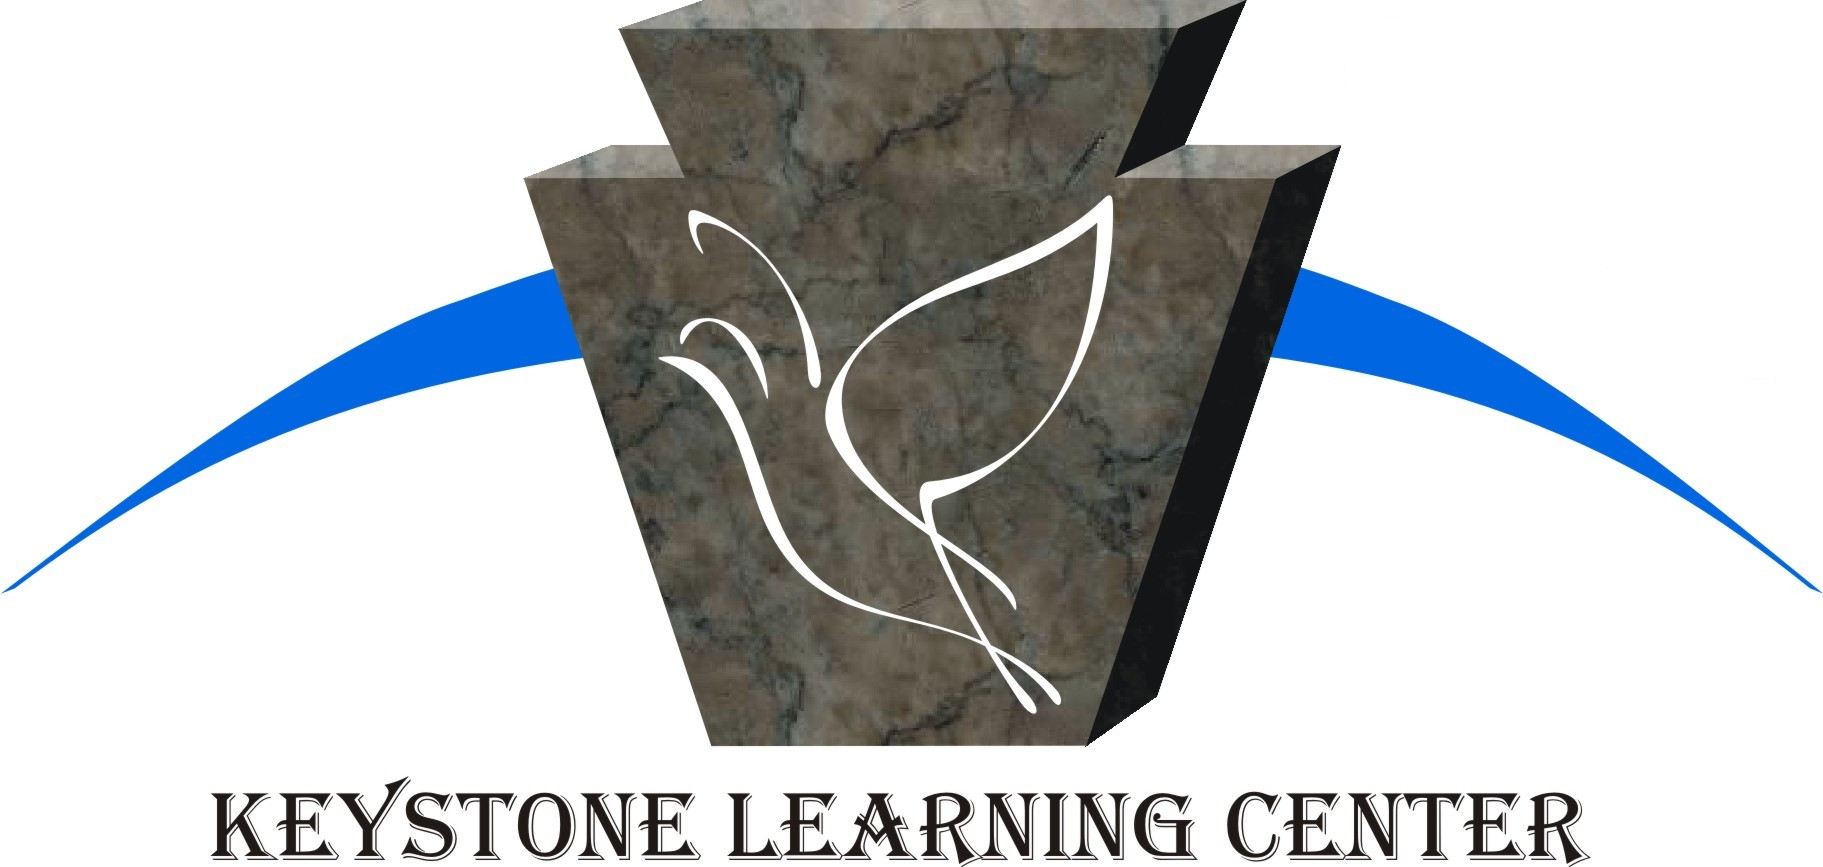 Keystone Learning Center